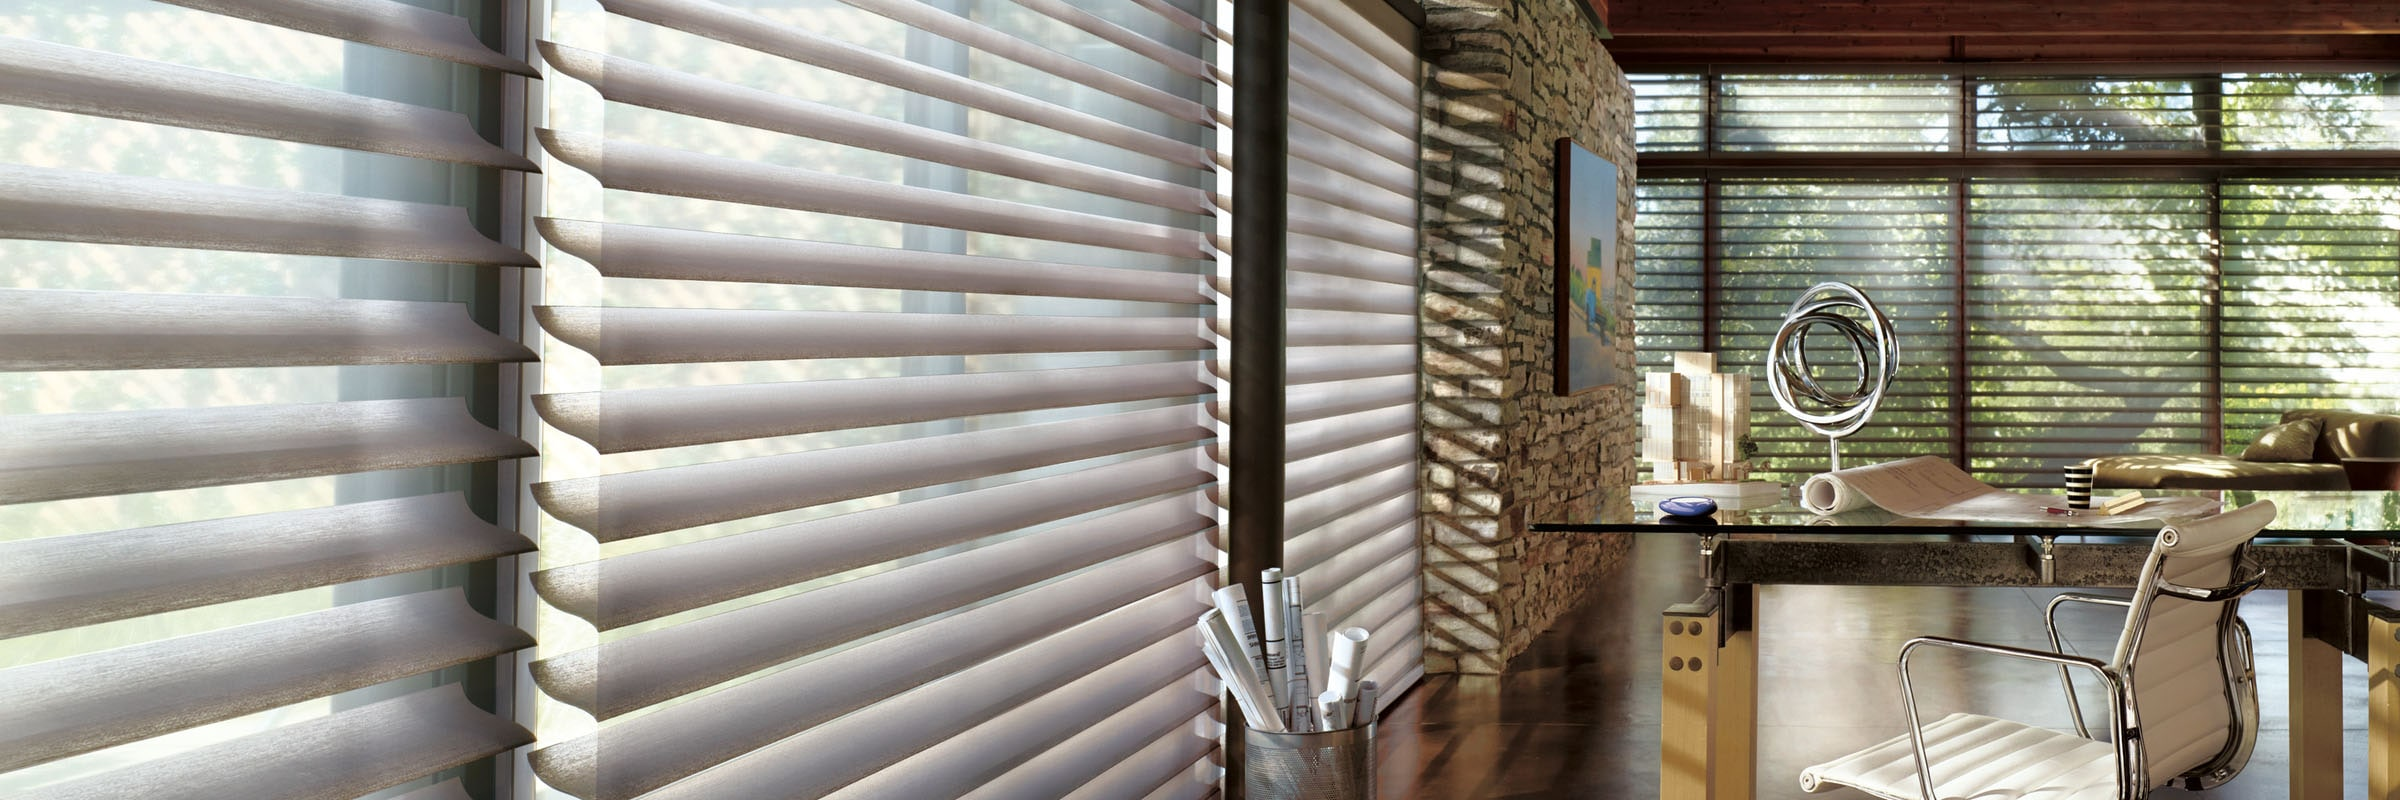 services pirouette well window douglass products shadings kelowna the shutters dressed blinds hunter douglas sheers